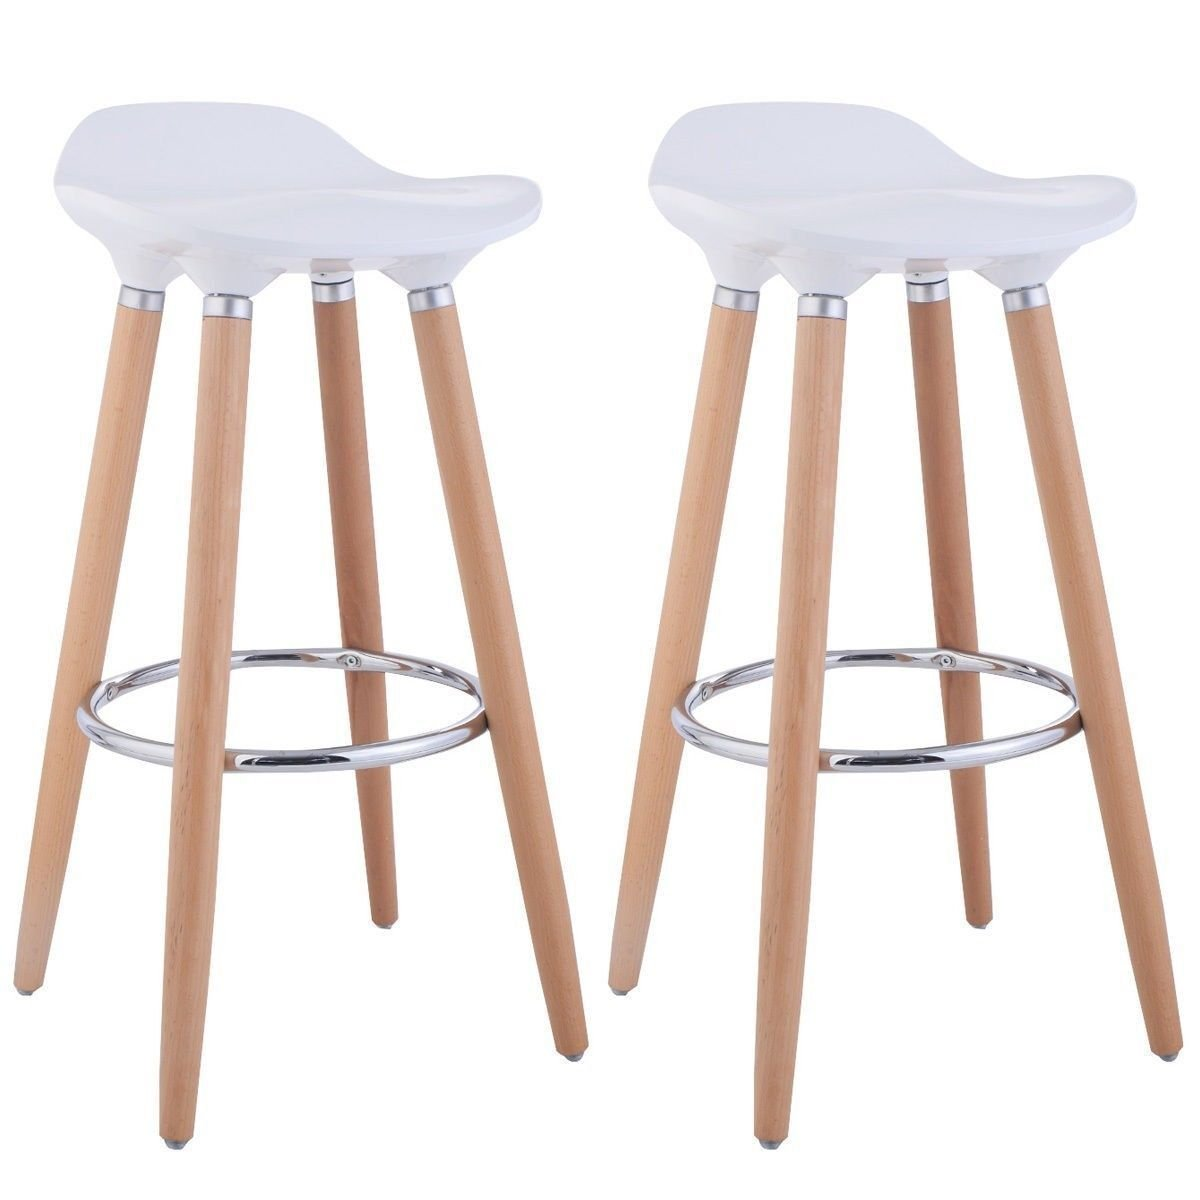 Breakfast Kitchen Make Up Bar Chair Stools Modern Retro Wooden Legs ...